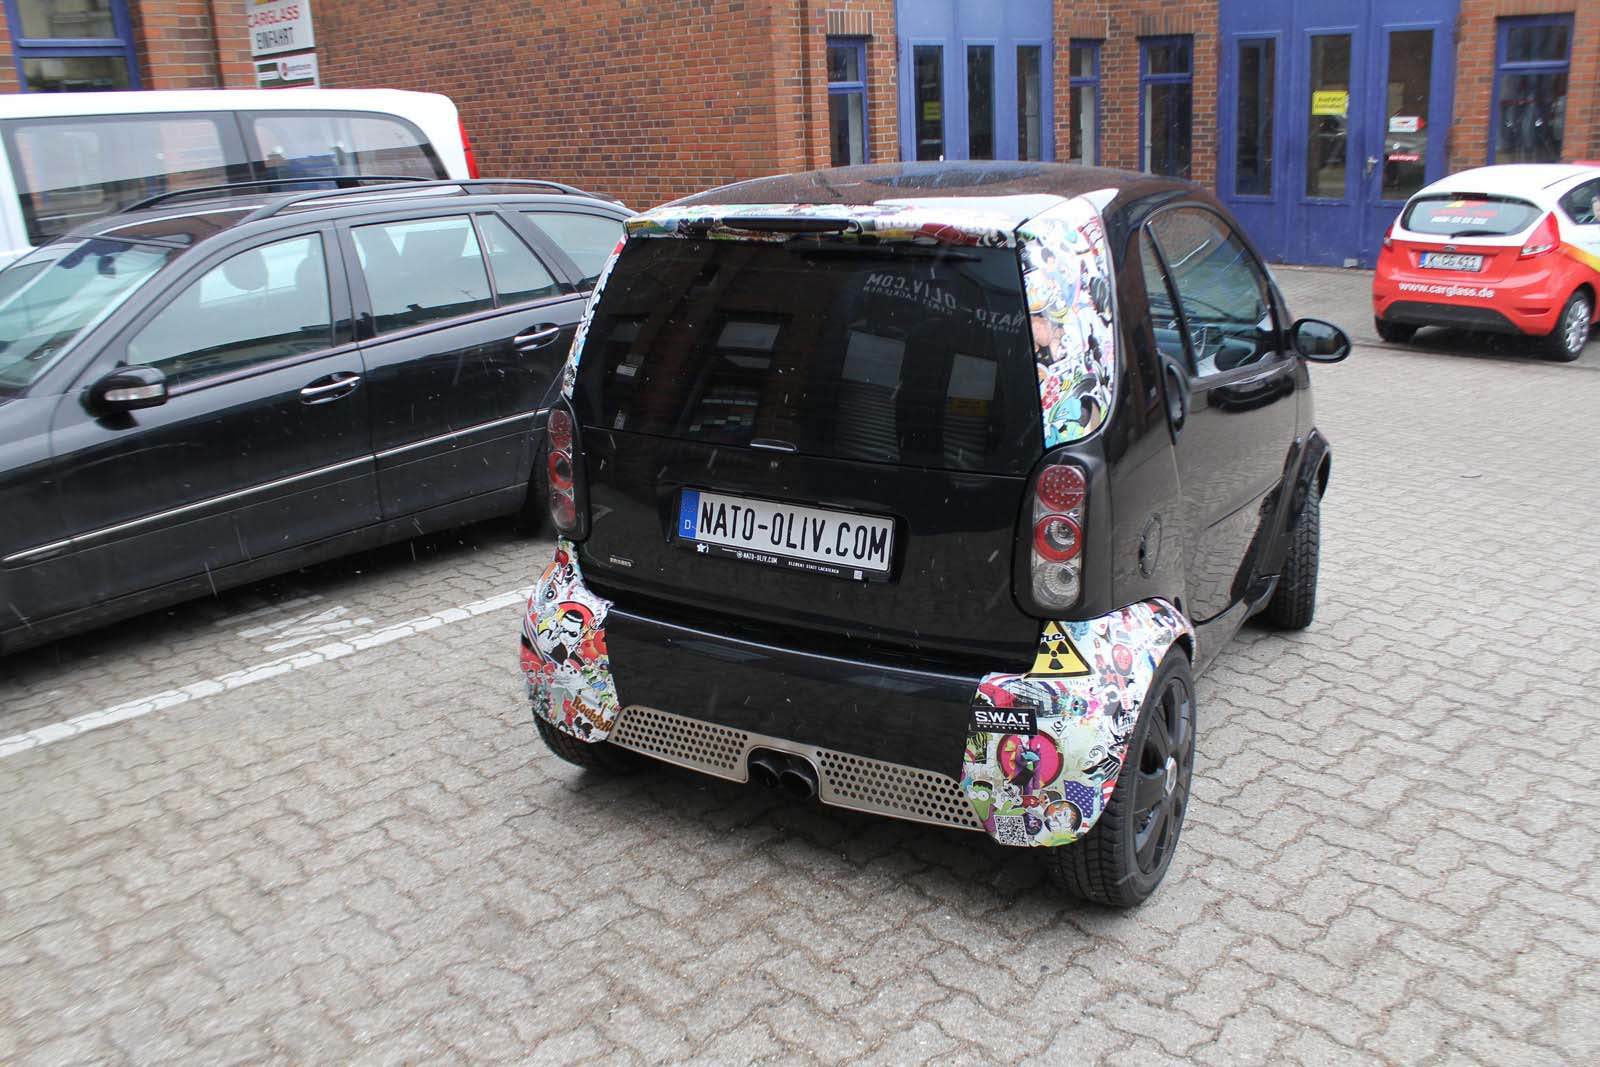 SMART_FORTWO_TEILFOLIERUNG_STICKERBOMBING_DIGITALDRUCK_07